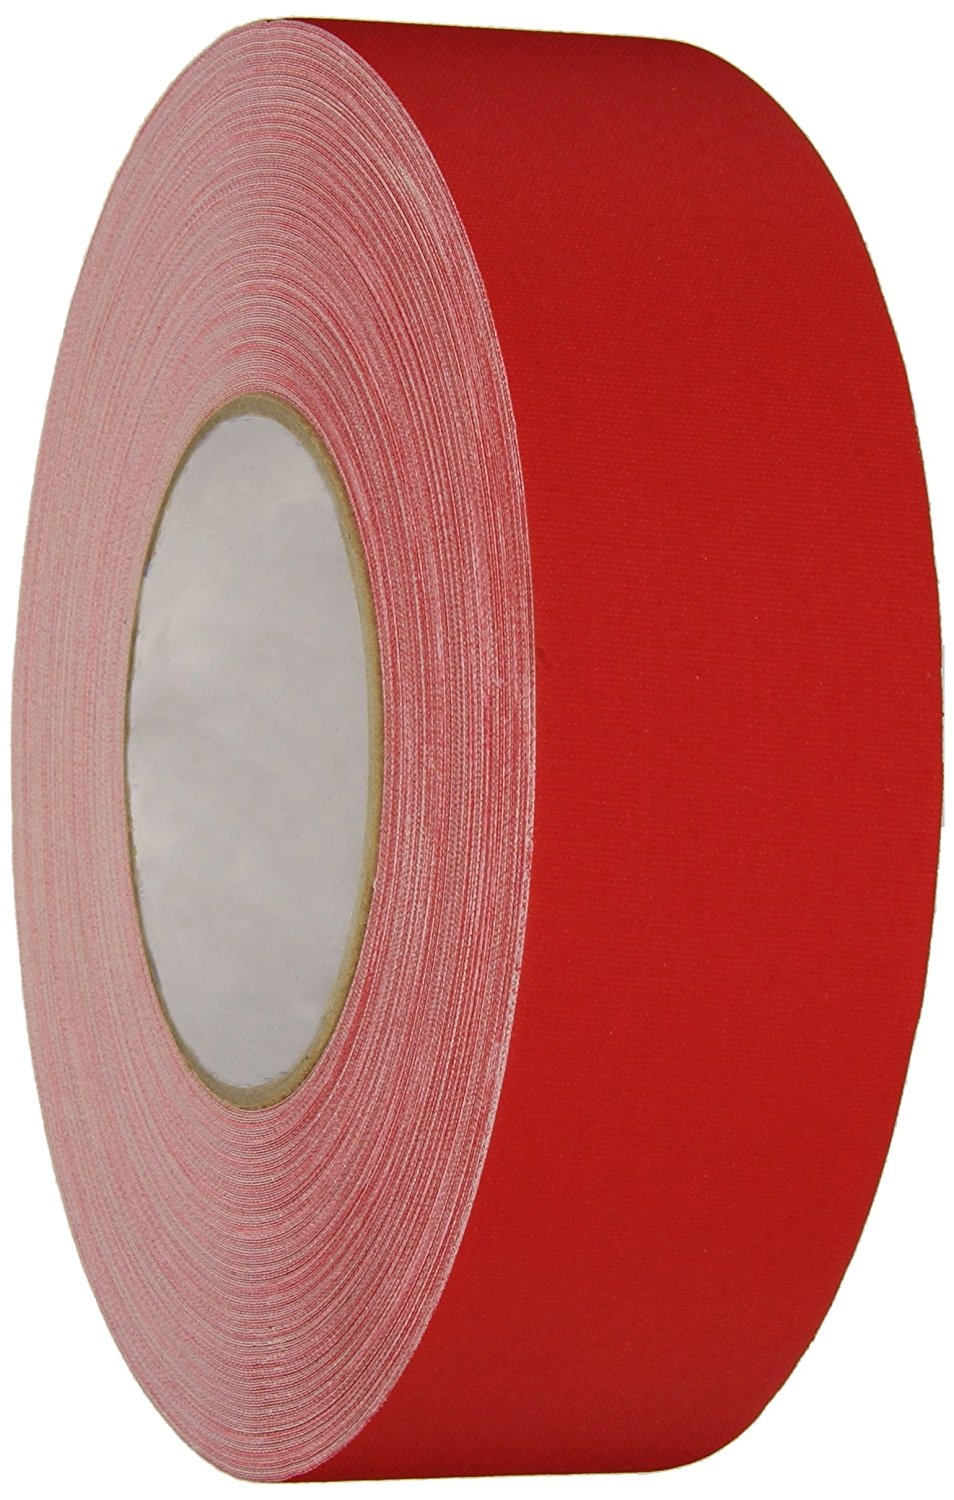 11.5 mil Thick 72mm Width Polyken 510 Vinyl Coated Cloth Premium Gaffers Tape Black 50m Length